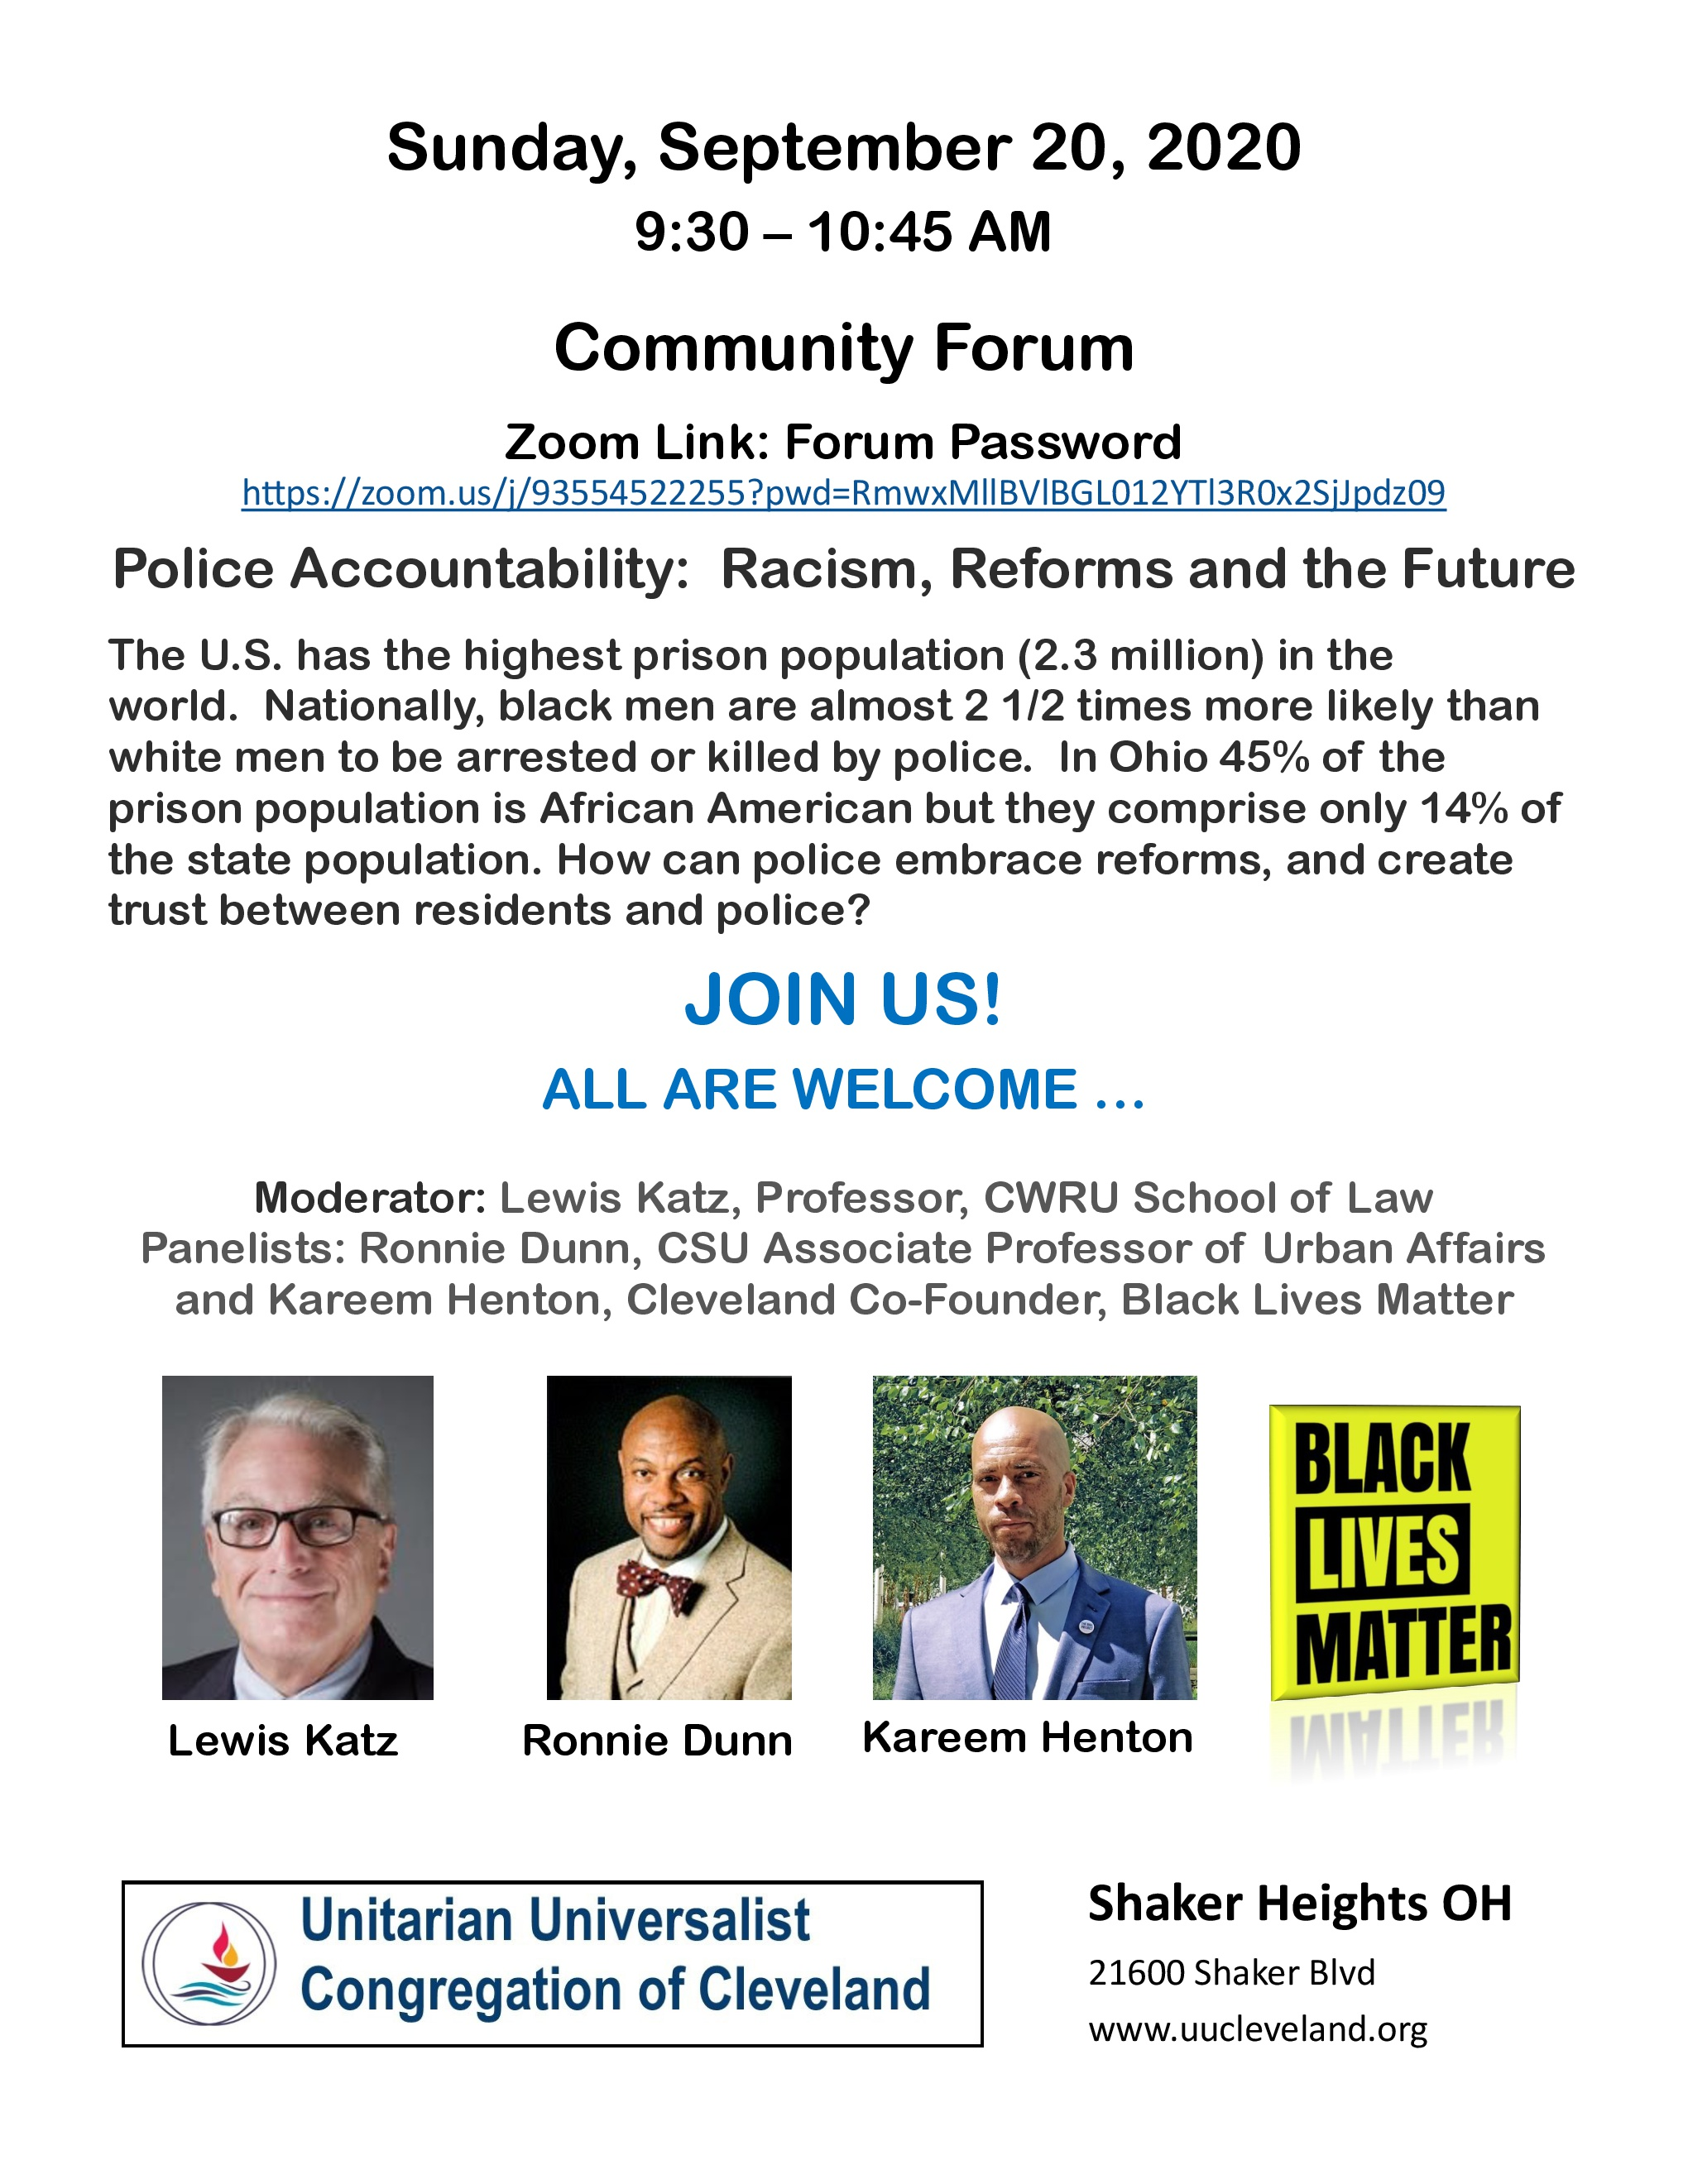 Police Accountability: Racism, Reforms and the Future